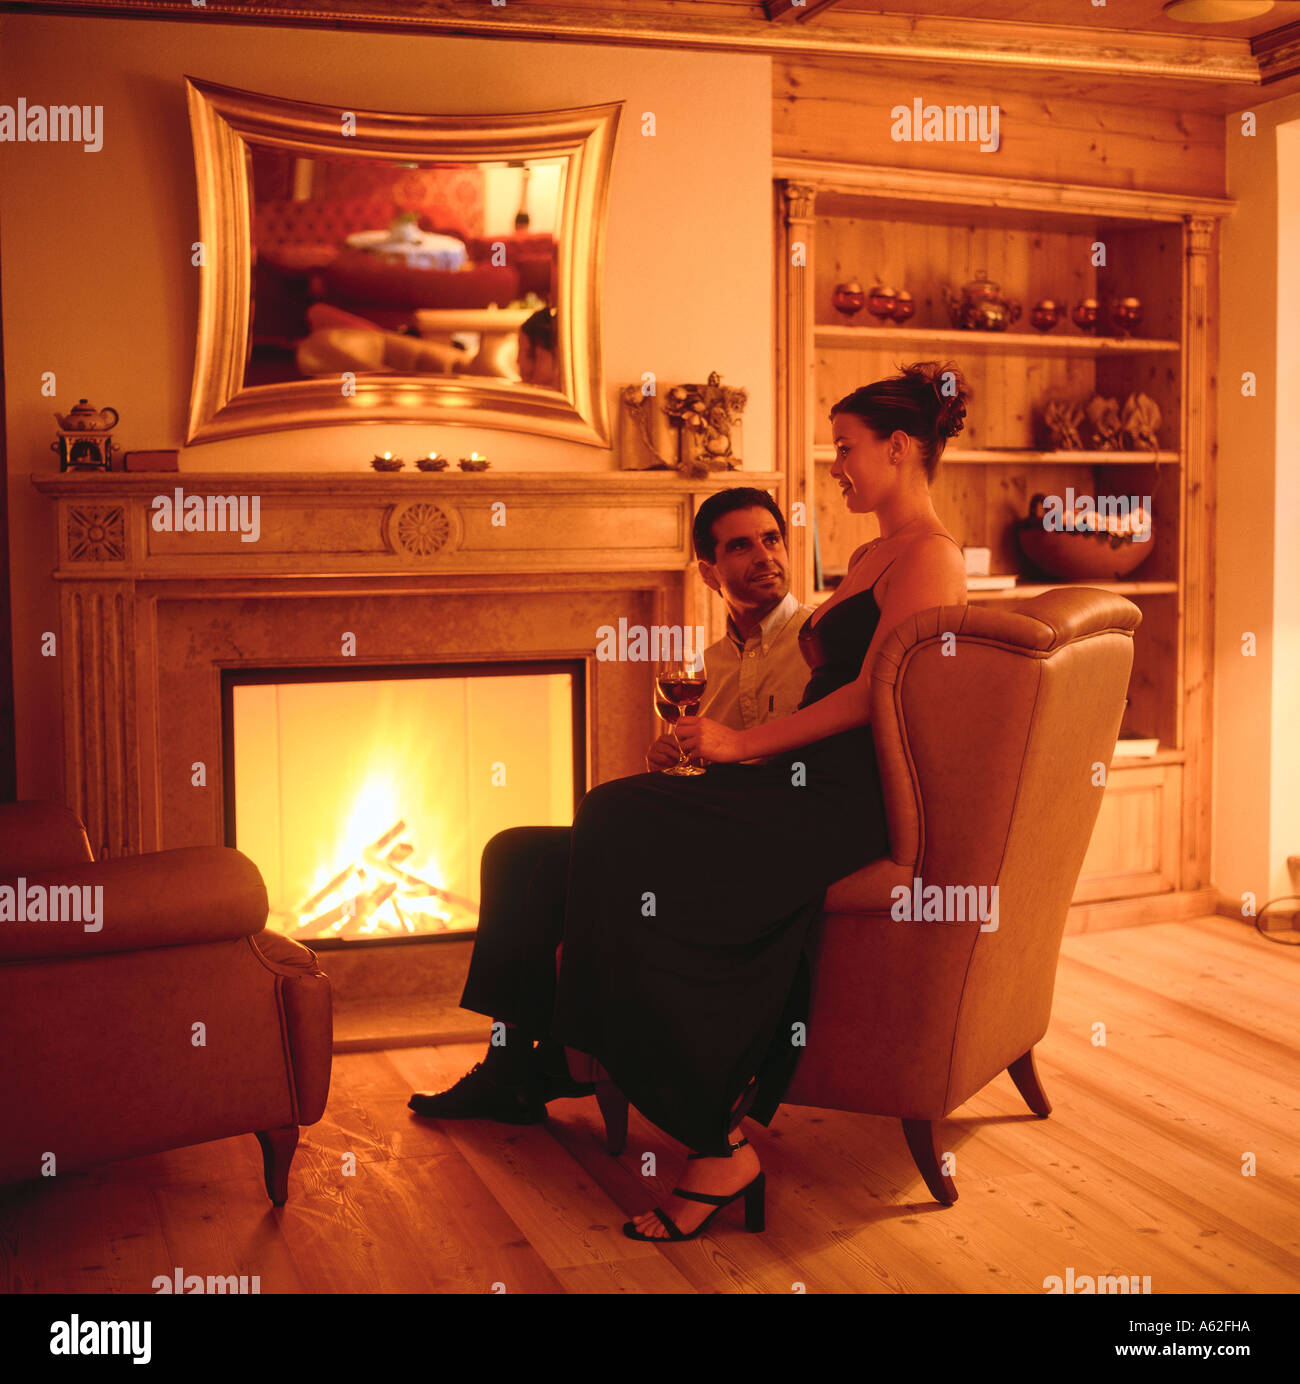 Couple sitting in front of chimney Stock Photo, Royalty Free Image ...